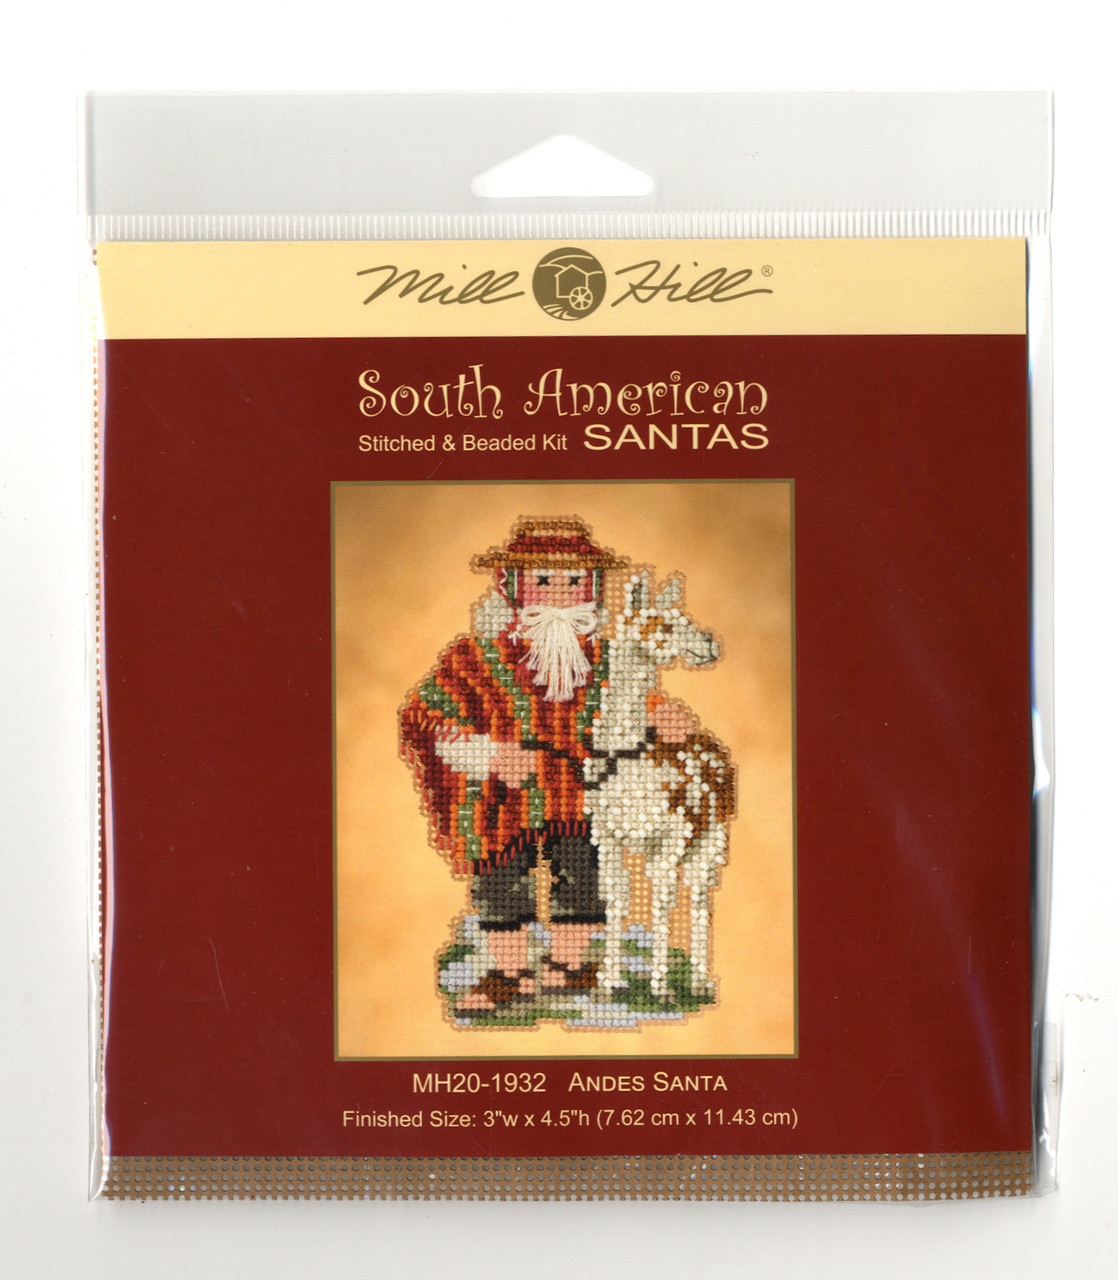 2019 Mill Hill South American Santas Trio (Set of 3 Kits)